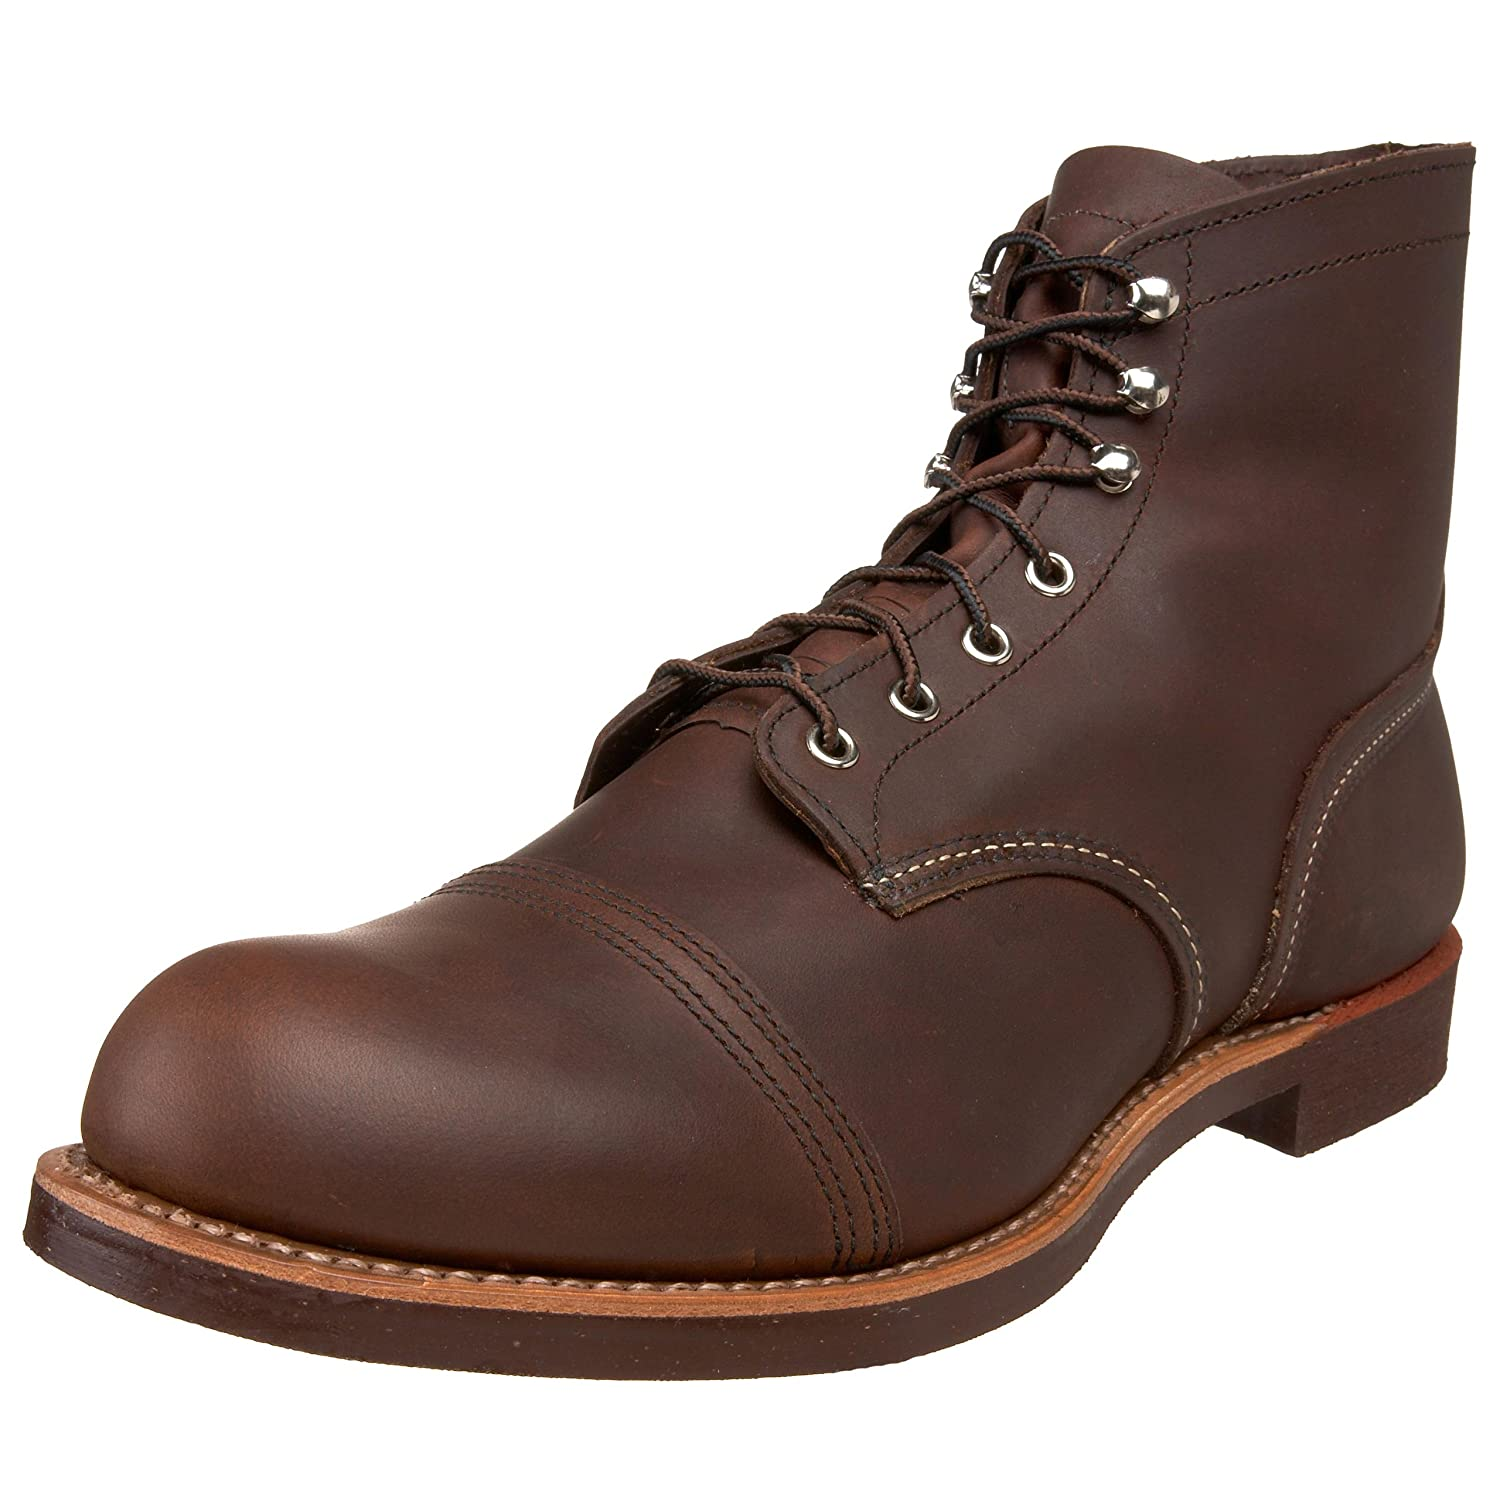 Edwardian Men's Shoes & Boots | 1900, 1910s Red Wing Heritage Iron Ranger 6-Inch Boot $239.96 AT vintagedancer.com